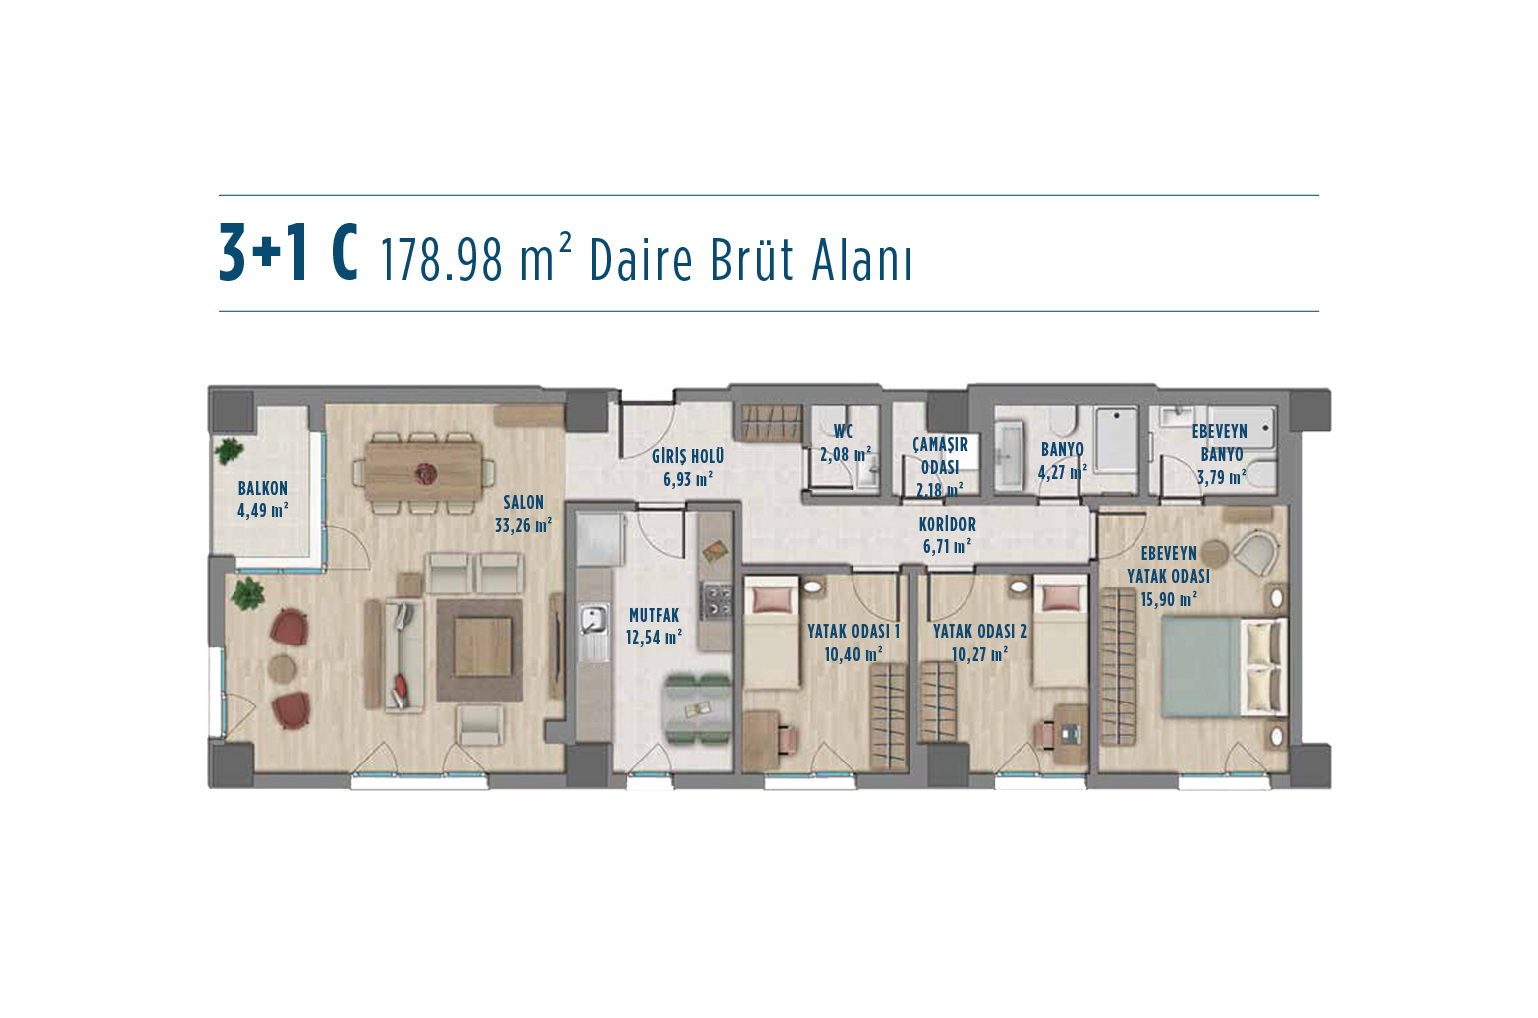 apartment plan 3+1 C